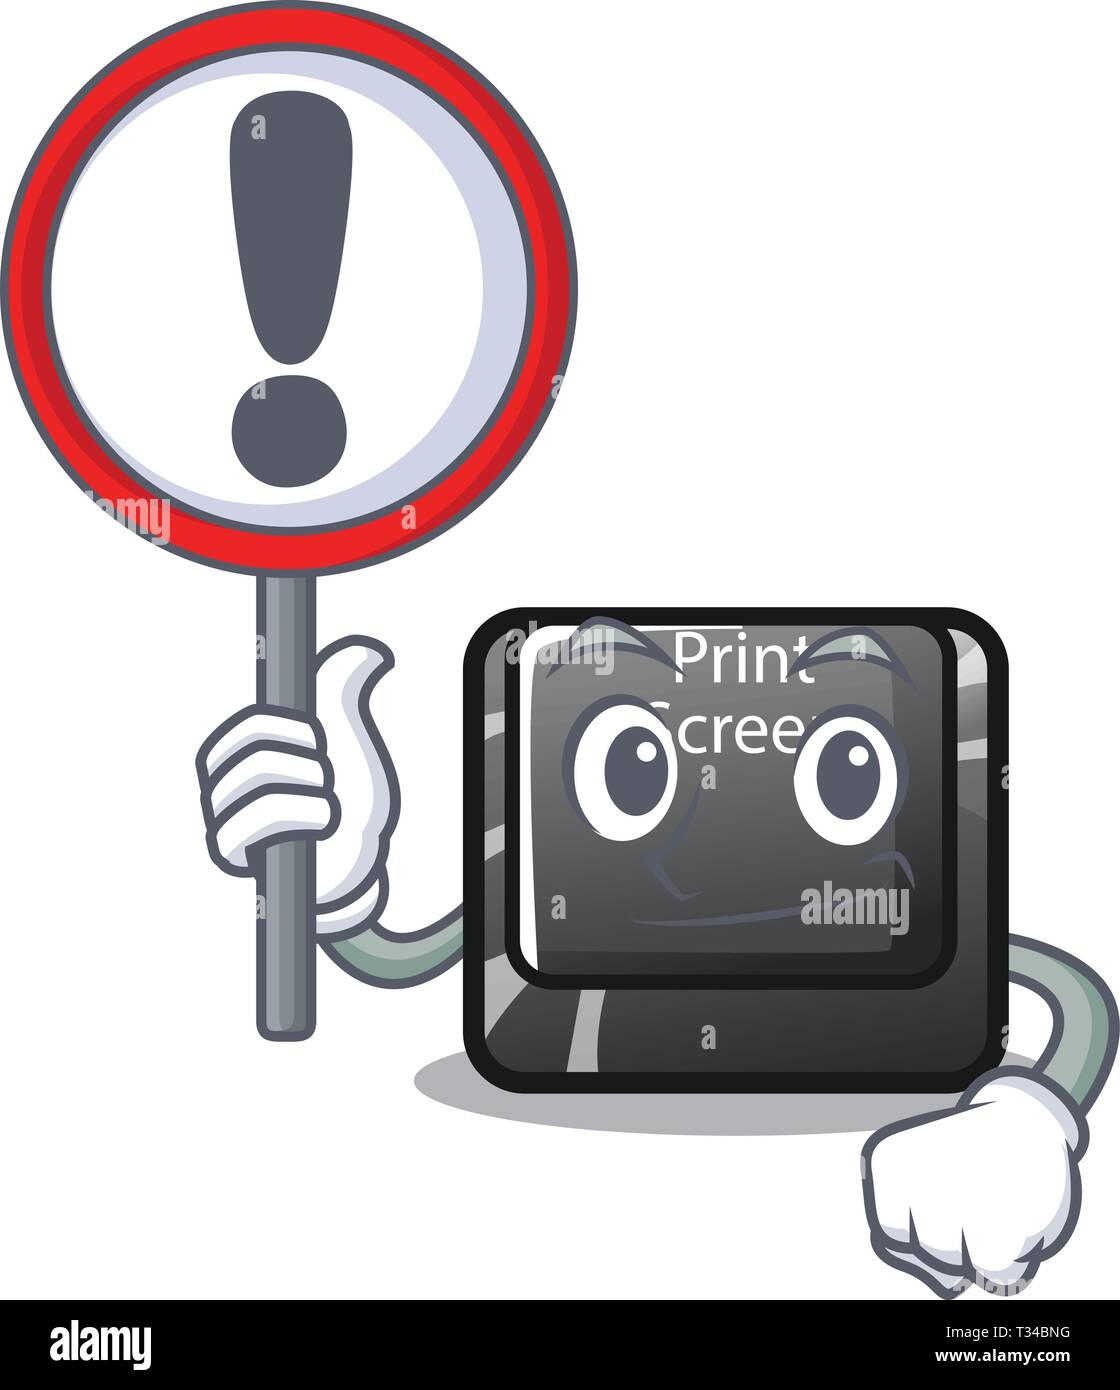 With sign button print screen the computer character - Stock Image